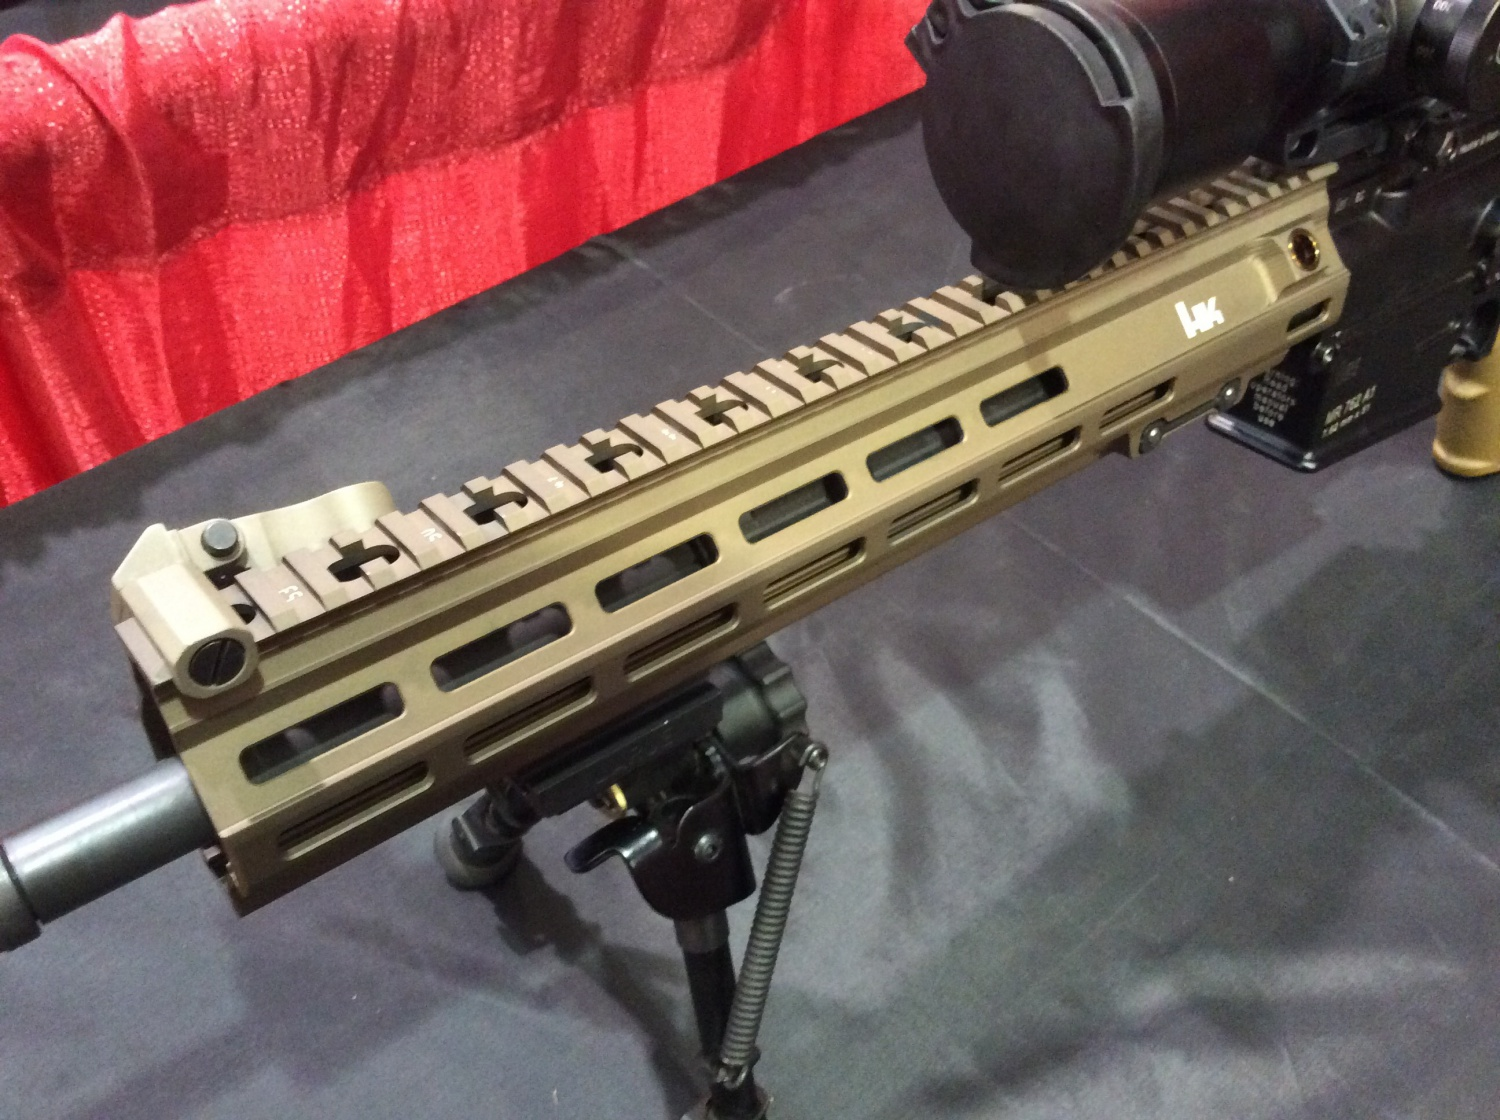 First adoption of M-Lok by the U.S. Military